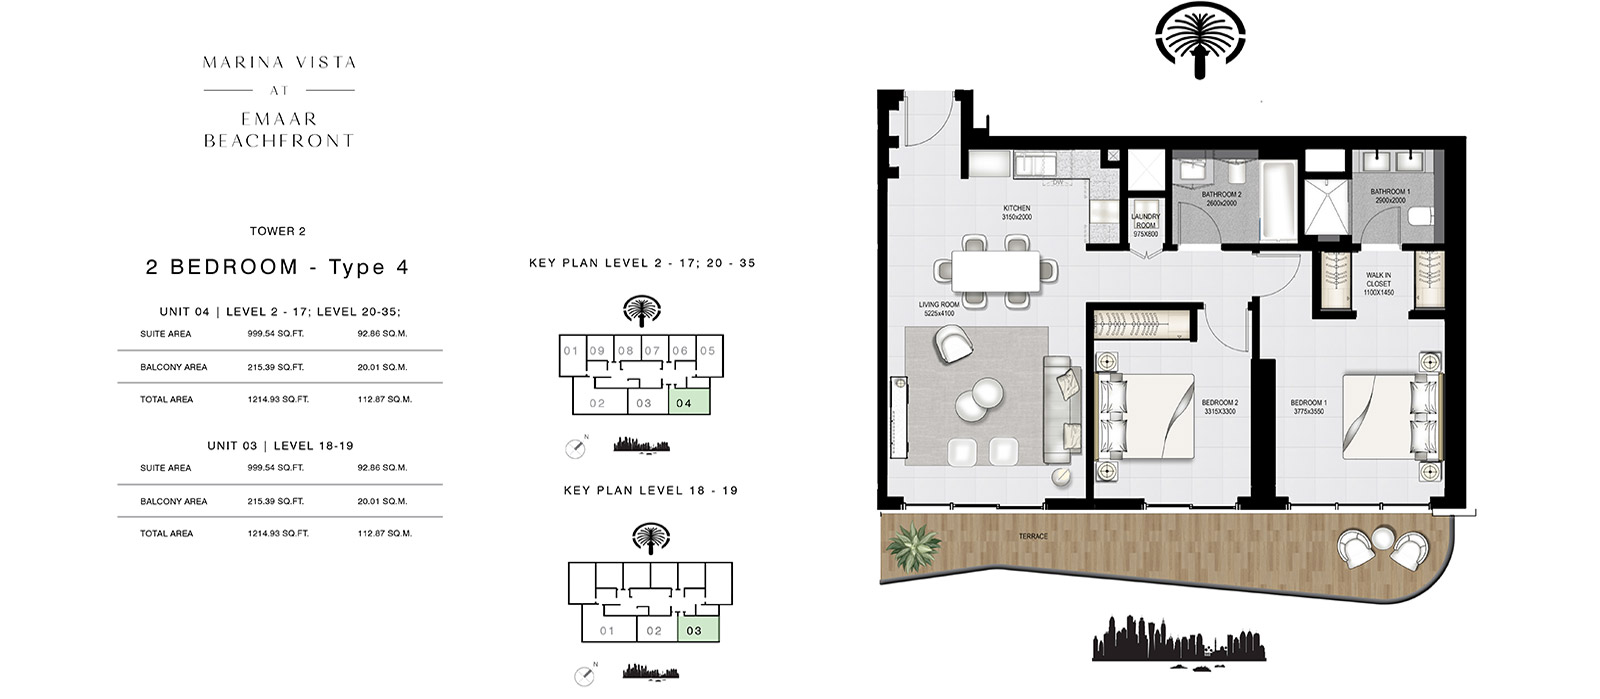 2 Bedroom Tower 2, Type 4, Size 1214.93 sq.ft.